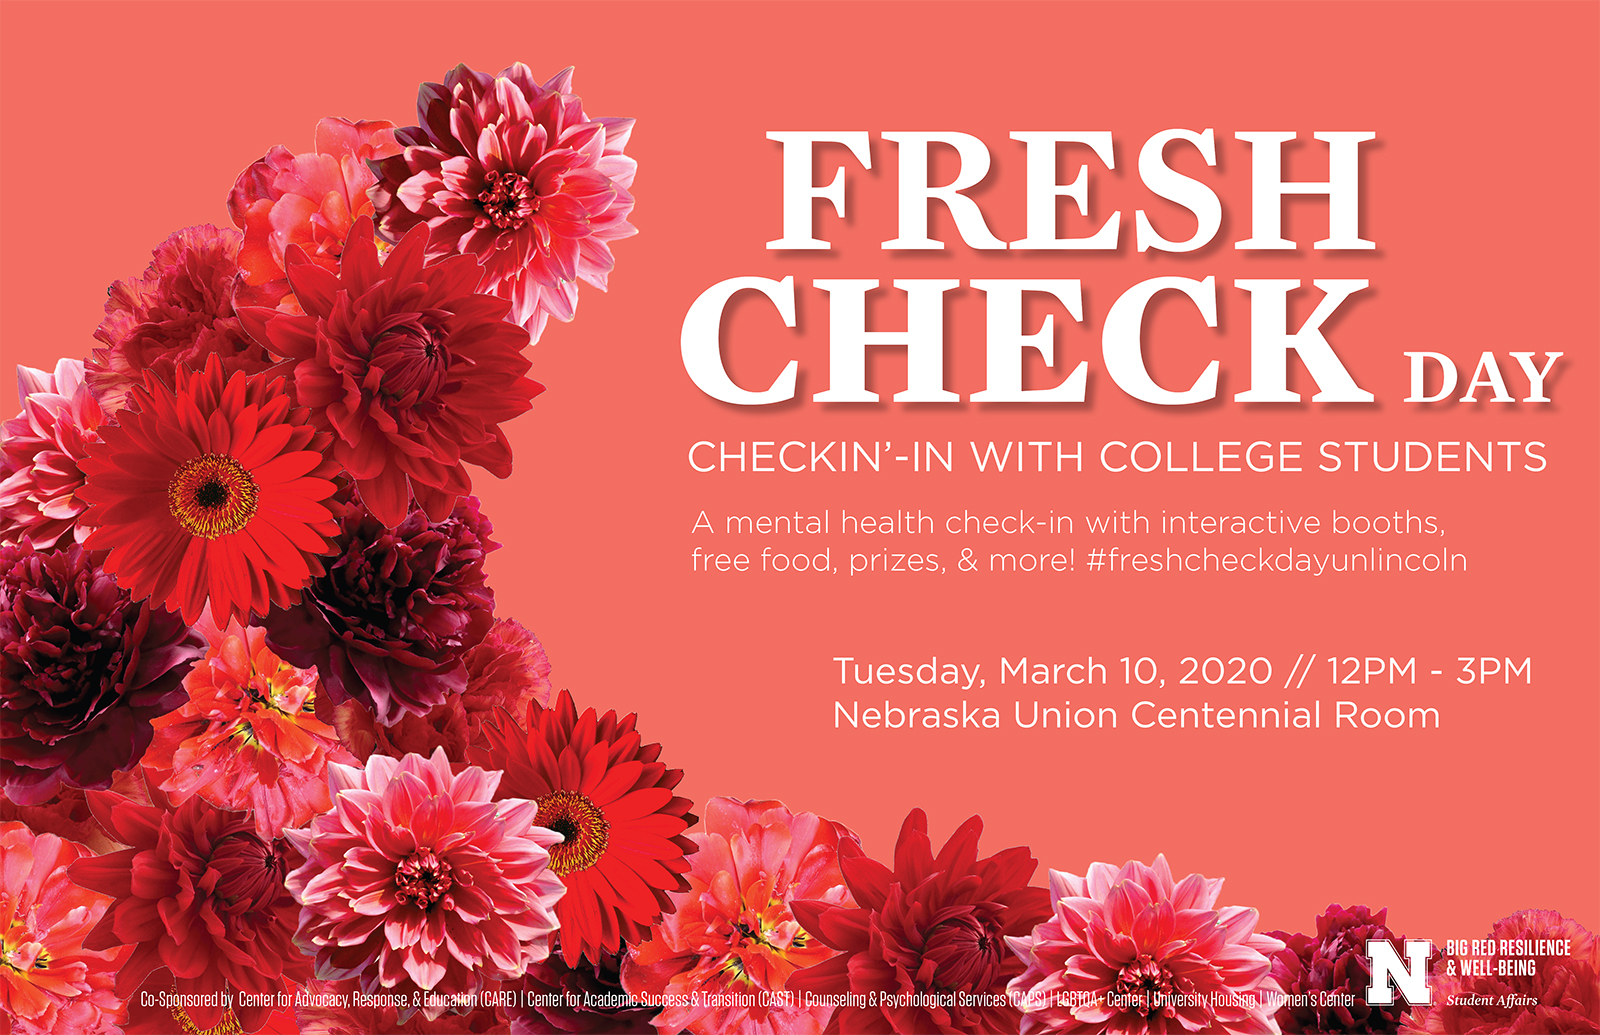 Poster for Fresh Check Day at UNL